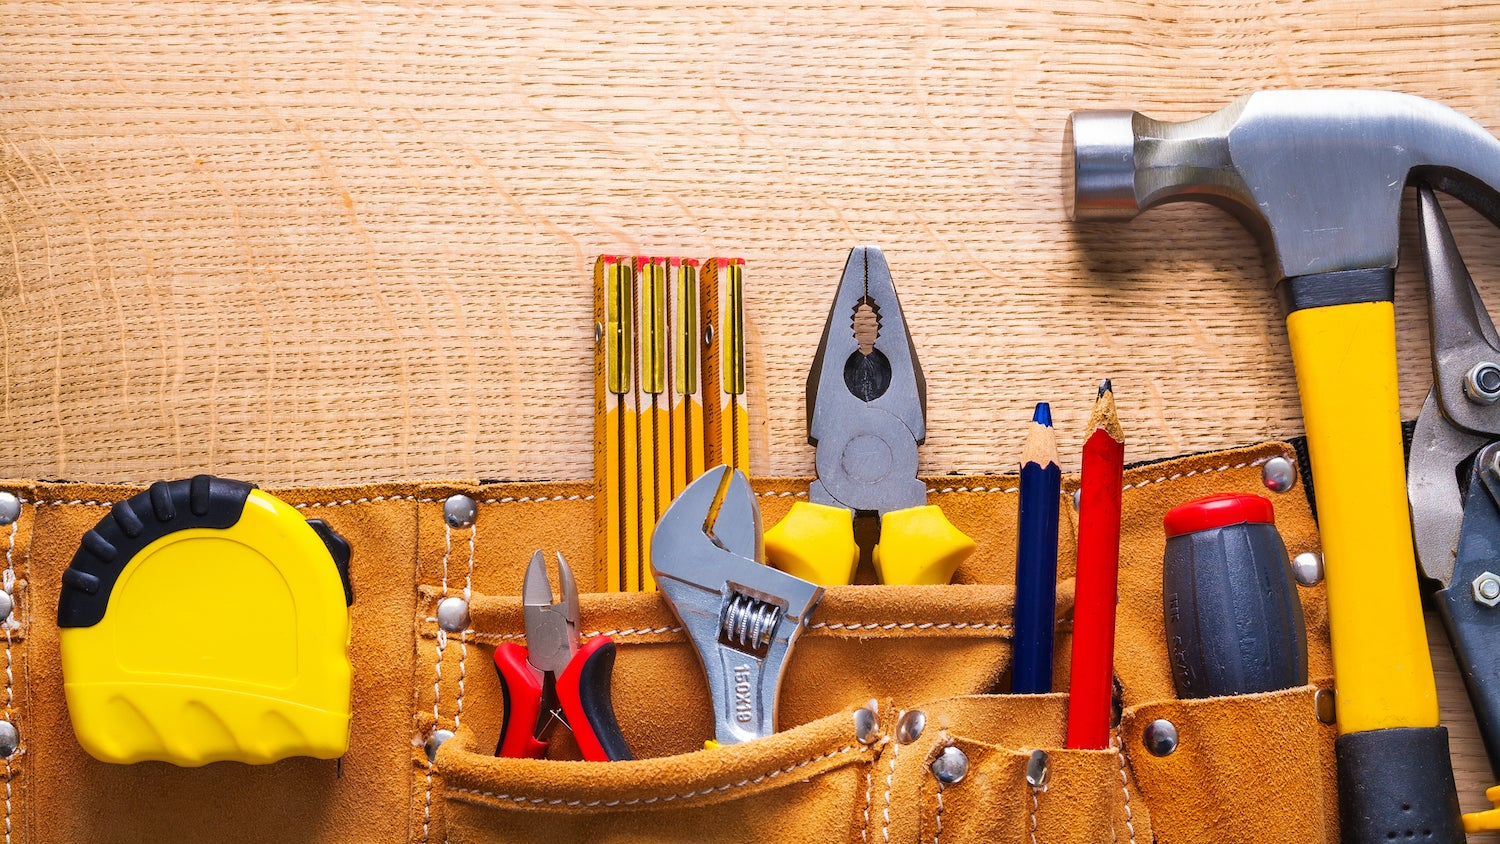 10 Hardware Tools Your Kid Should Start Using